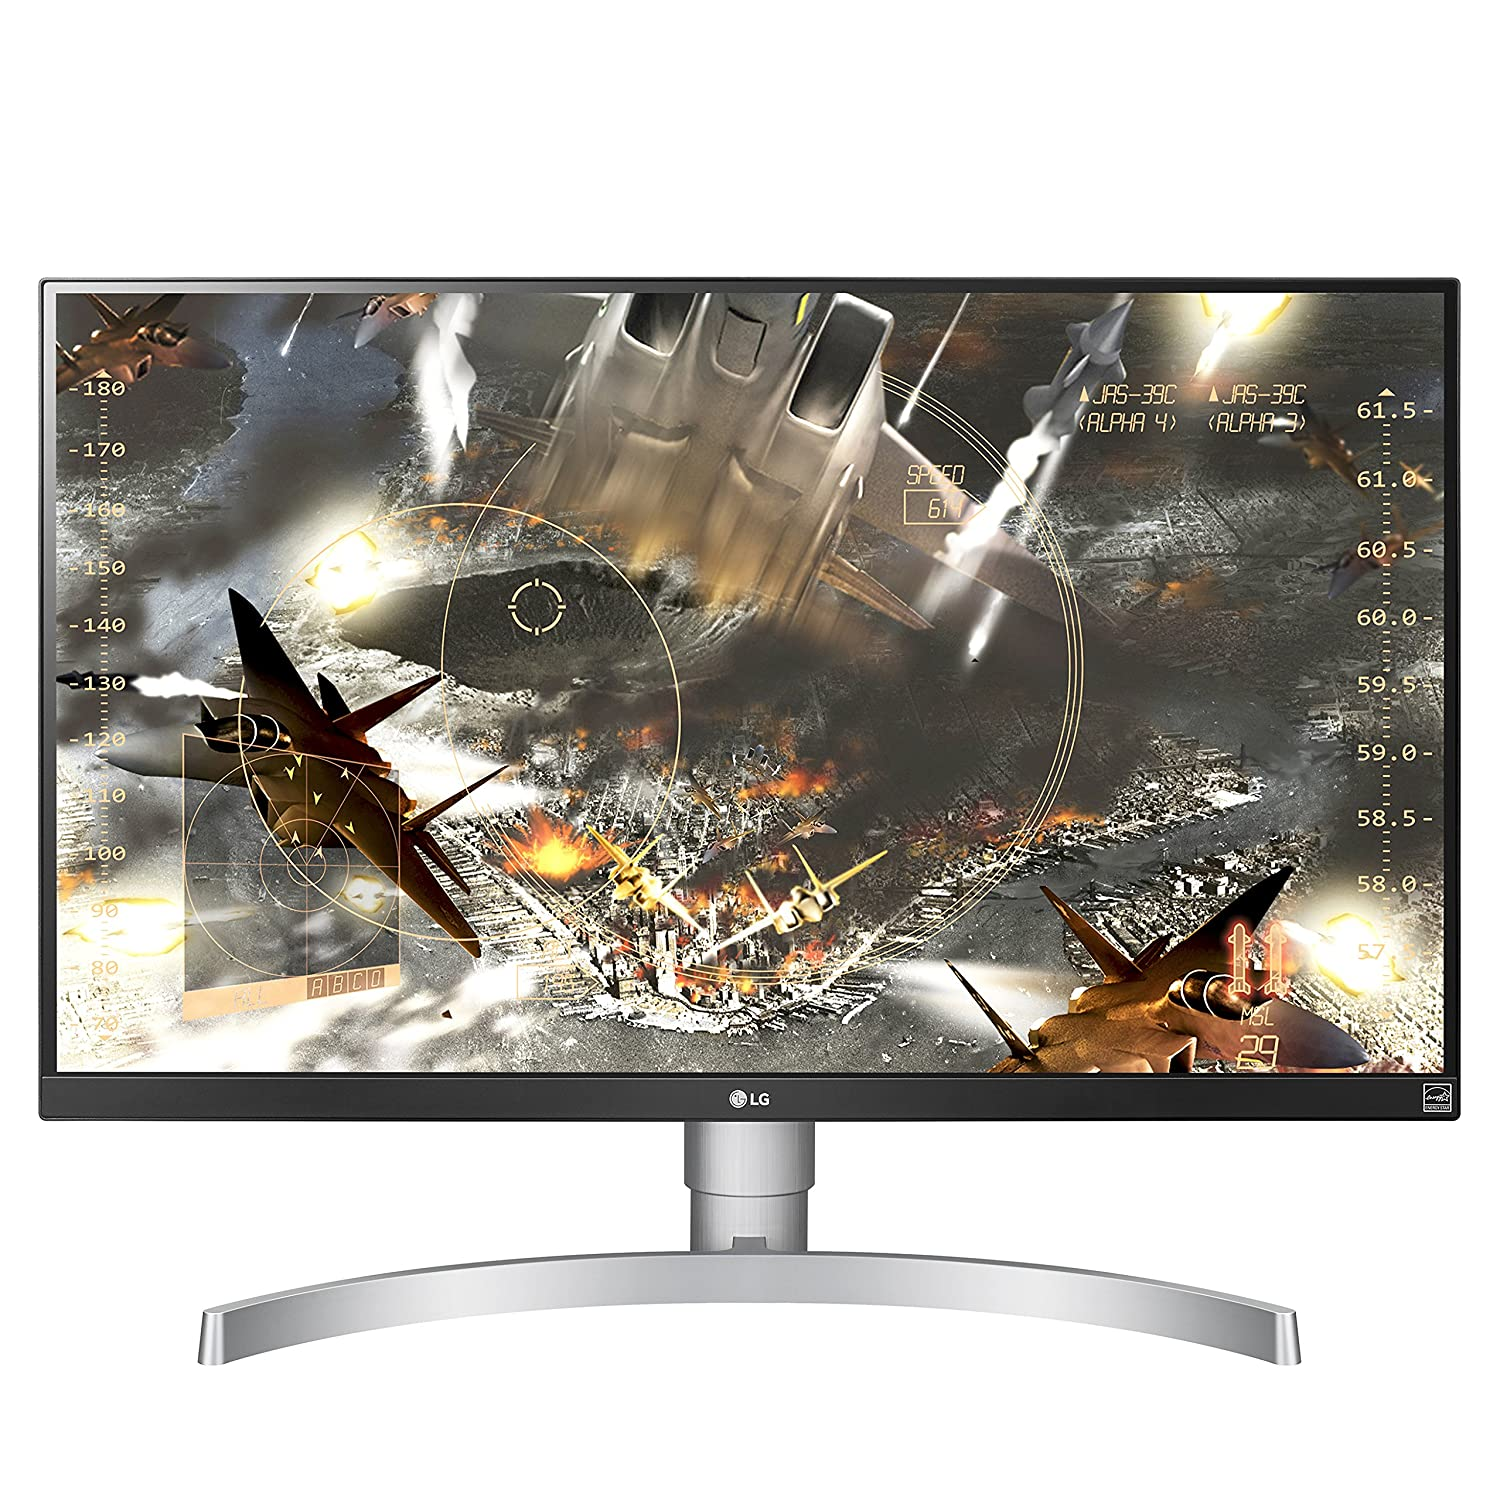 LG 27UK650 4K UHD IPS Monitor Black Friday Deal 2020